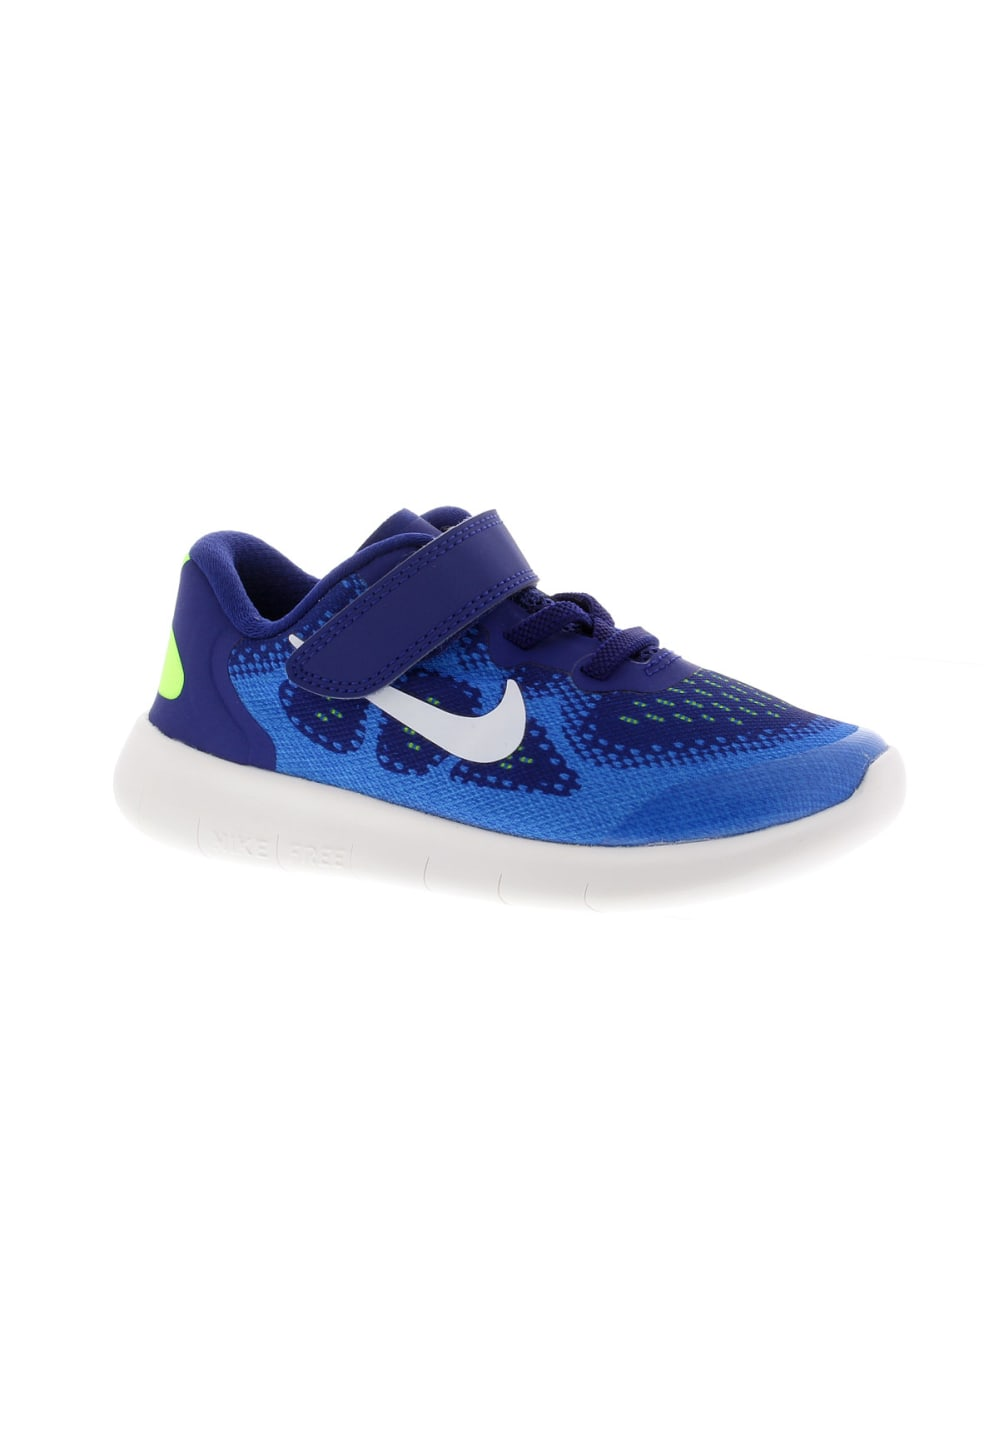 0d9da842b08 Next. -60%. This product is currently out of stock. Nike. Boys Free RN 2 TDV  - Running shoes